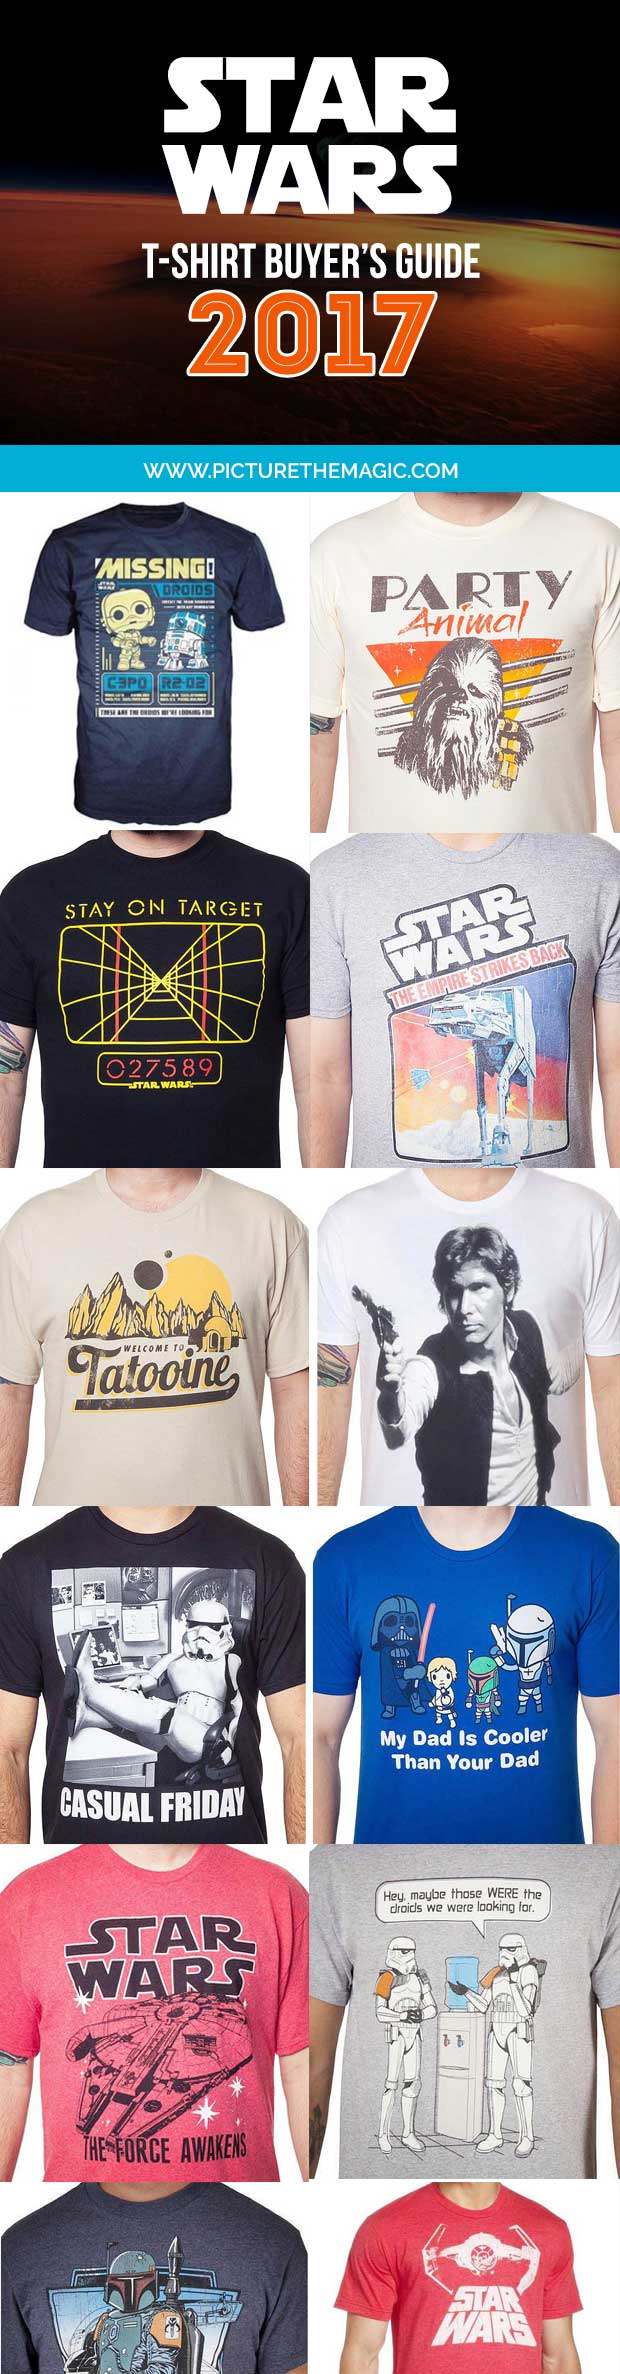 101 EPIC Star Wars T-Shirts for 2017! The best Princess Leia, Darth Vader, Yoda, Han Solo, Kylo Ren, and Chewbacca tshirts of the year.